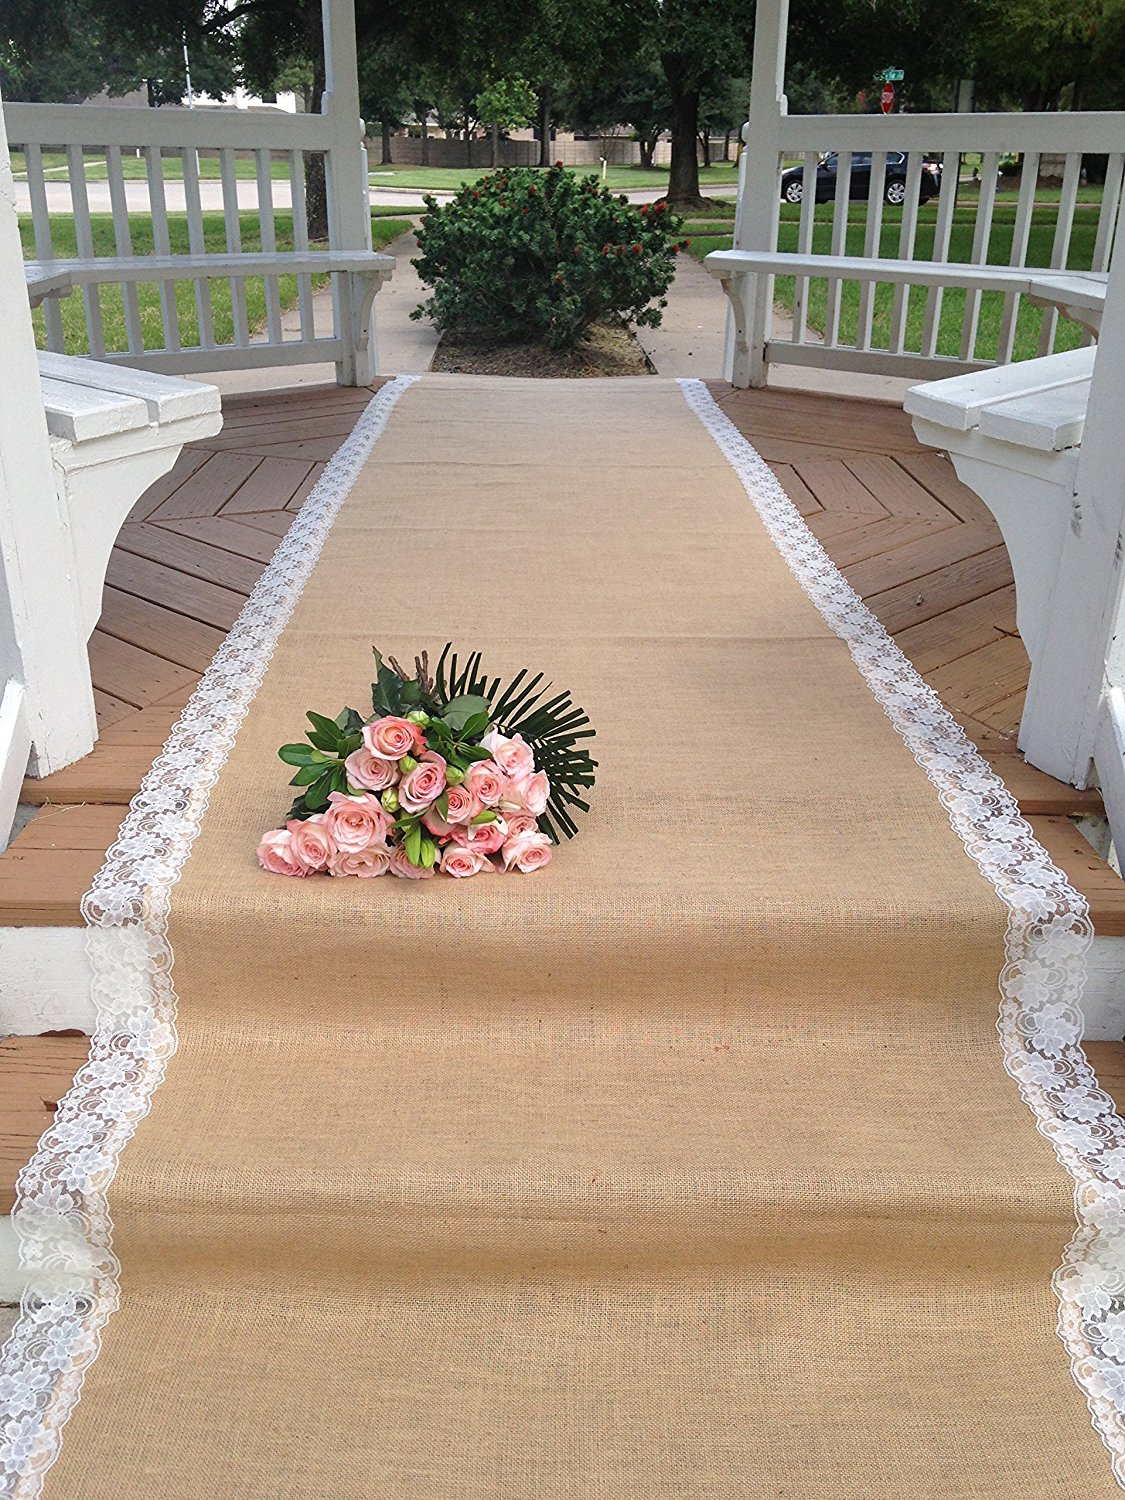 aisle runner, wedding aisle runner, wedding runners, personalized aisle runner, aisle runner for wedding, wedding aisle decorations, burlap aisle runner, wedding decorations